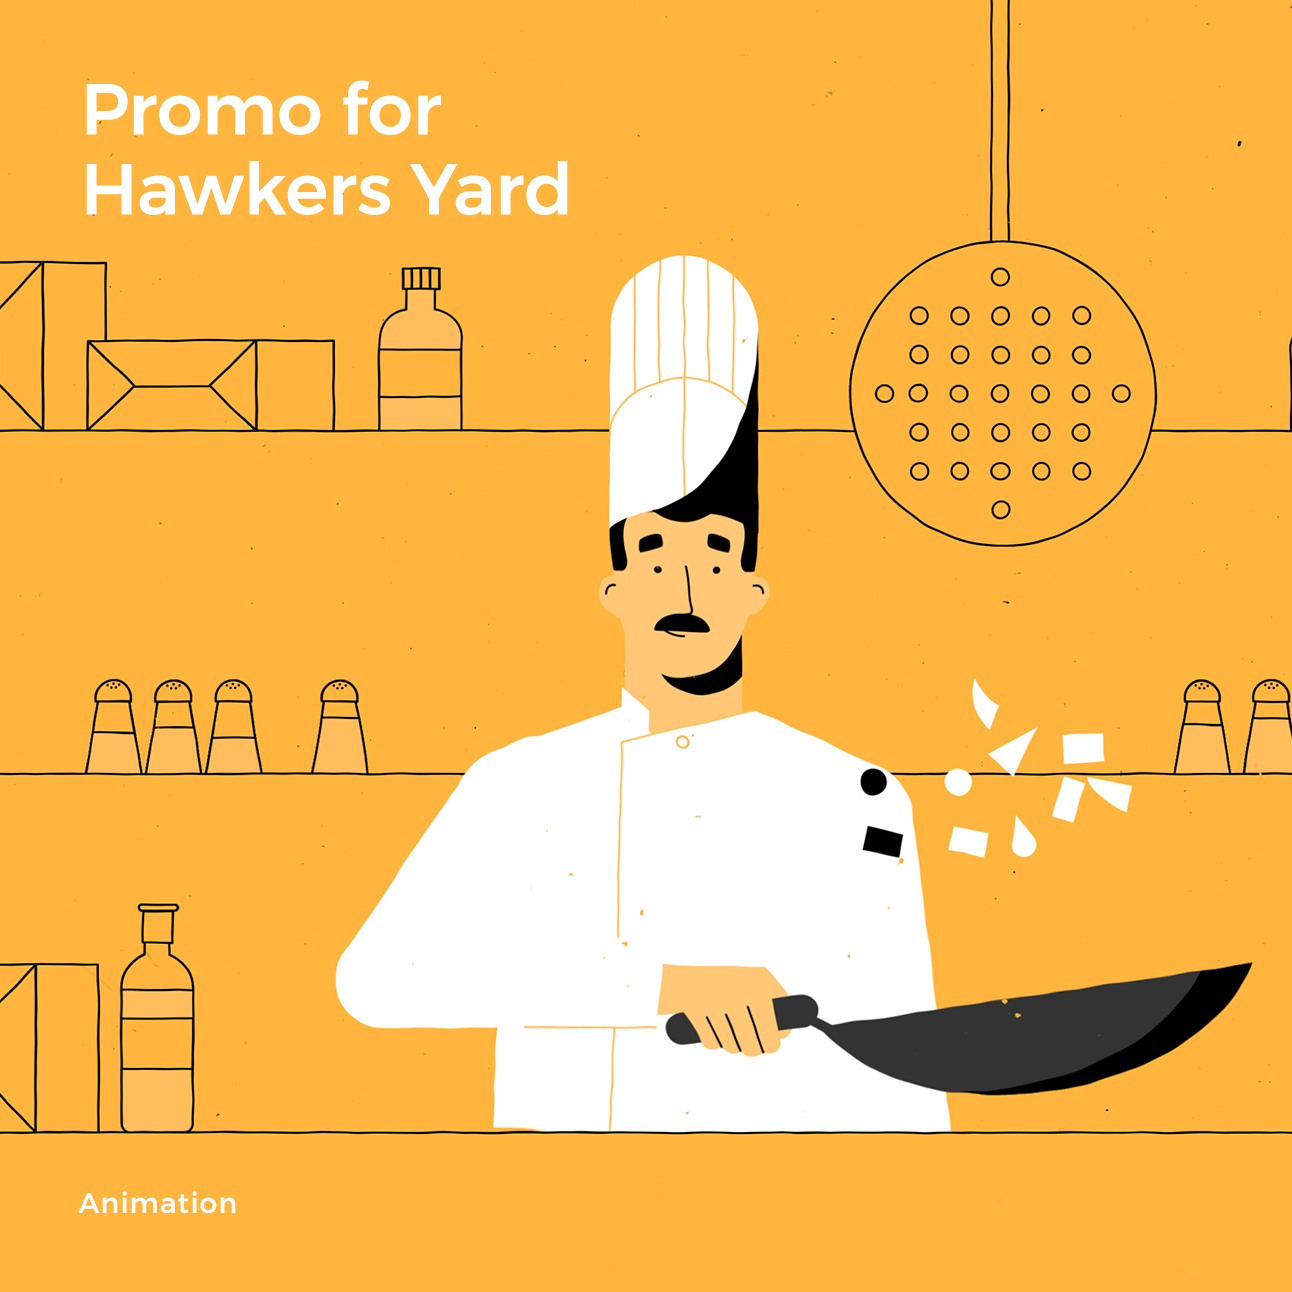 Promo for Hawkers Yard